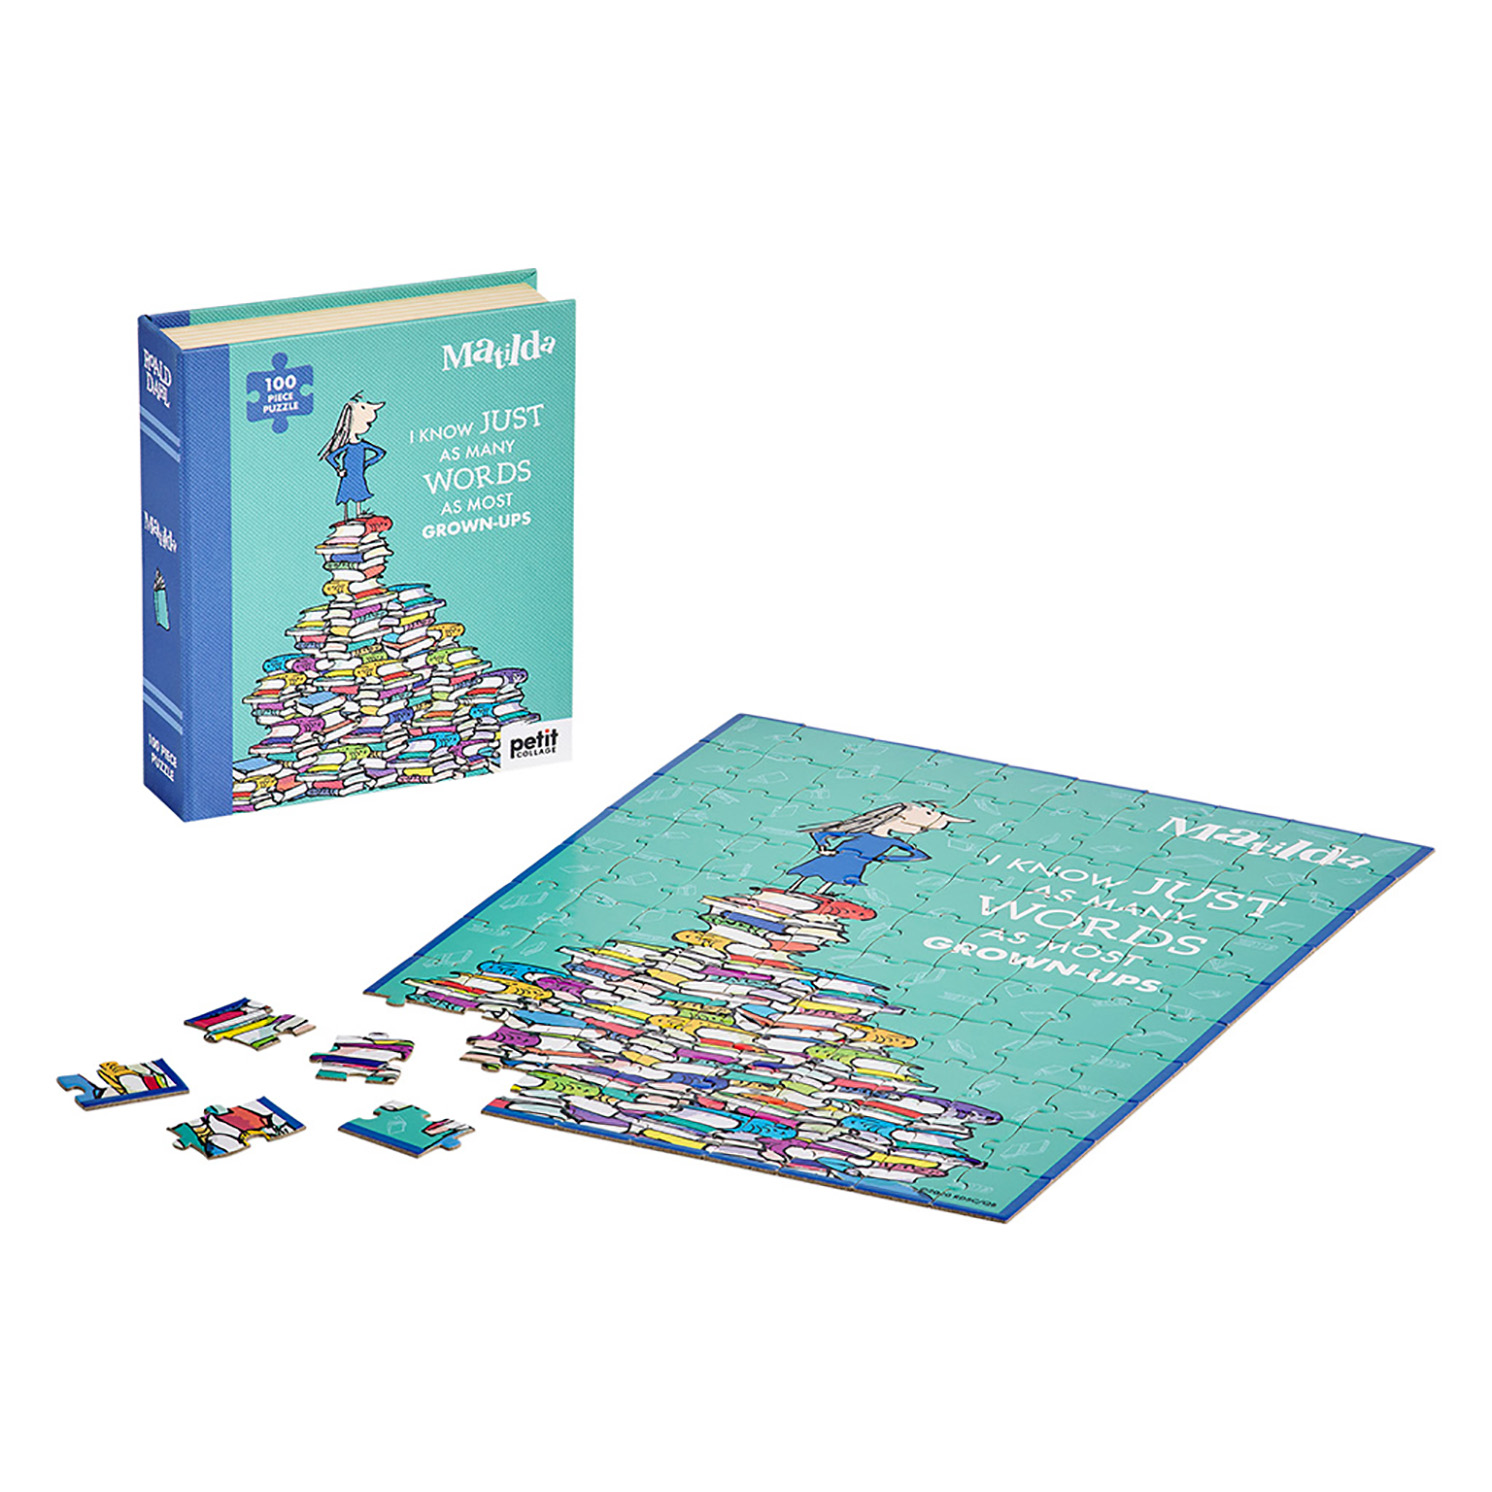 Petit Collage – Roald Dahl Matilda 100-Piece Book Puzzle in Box